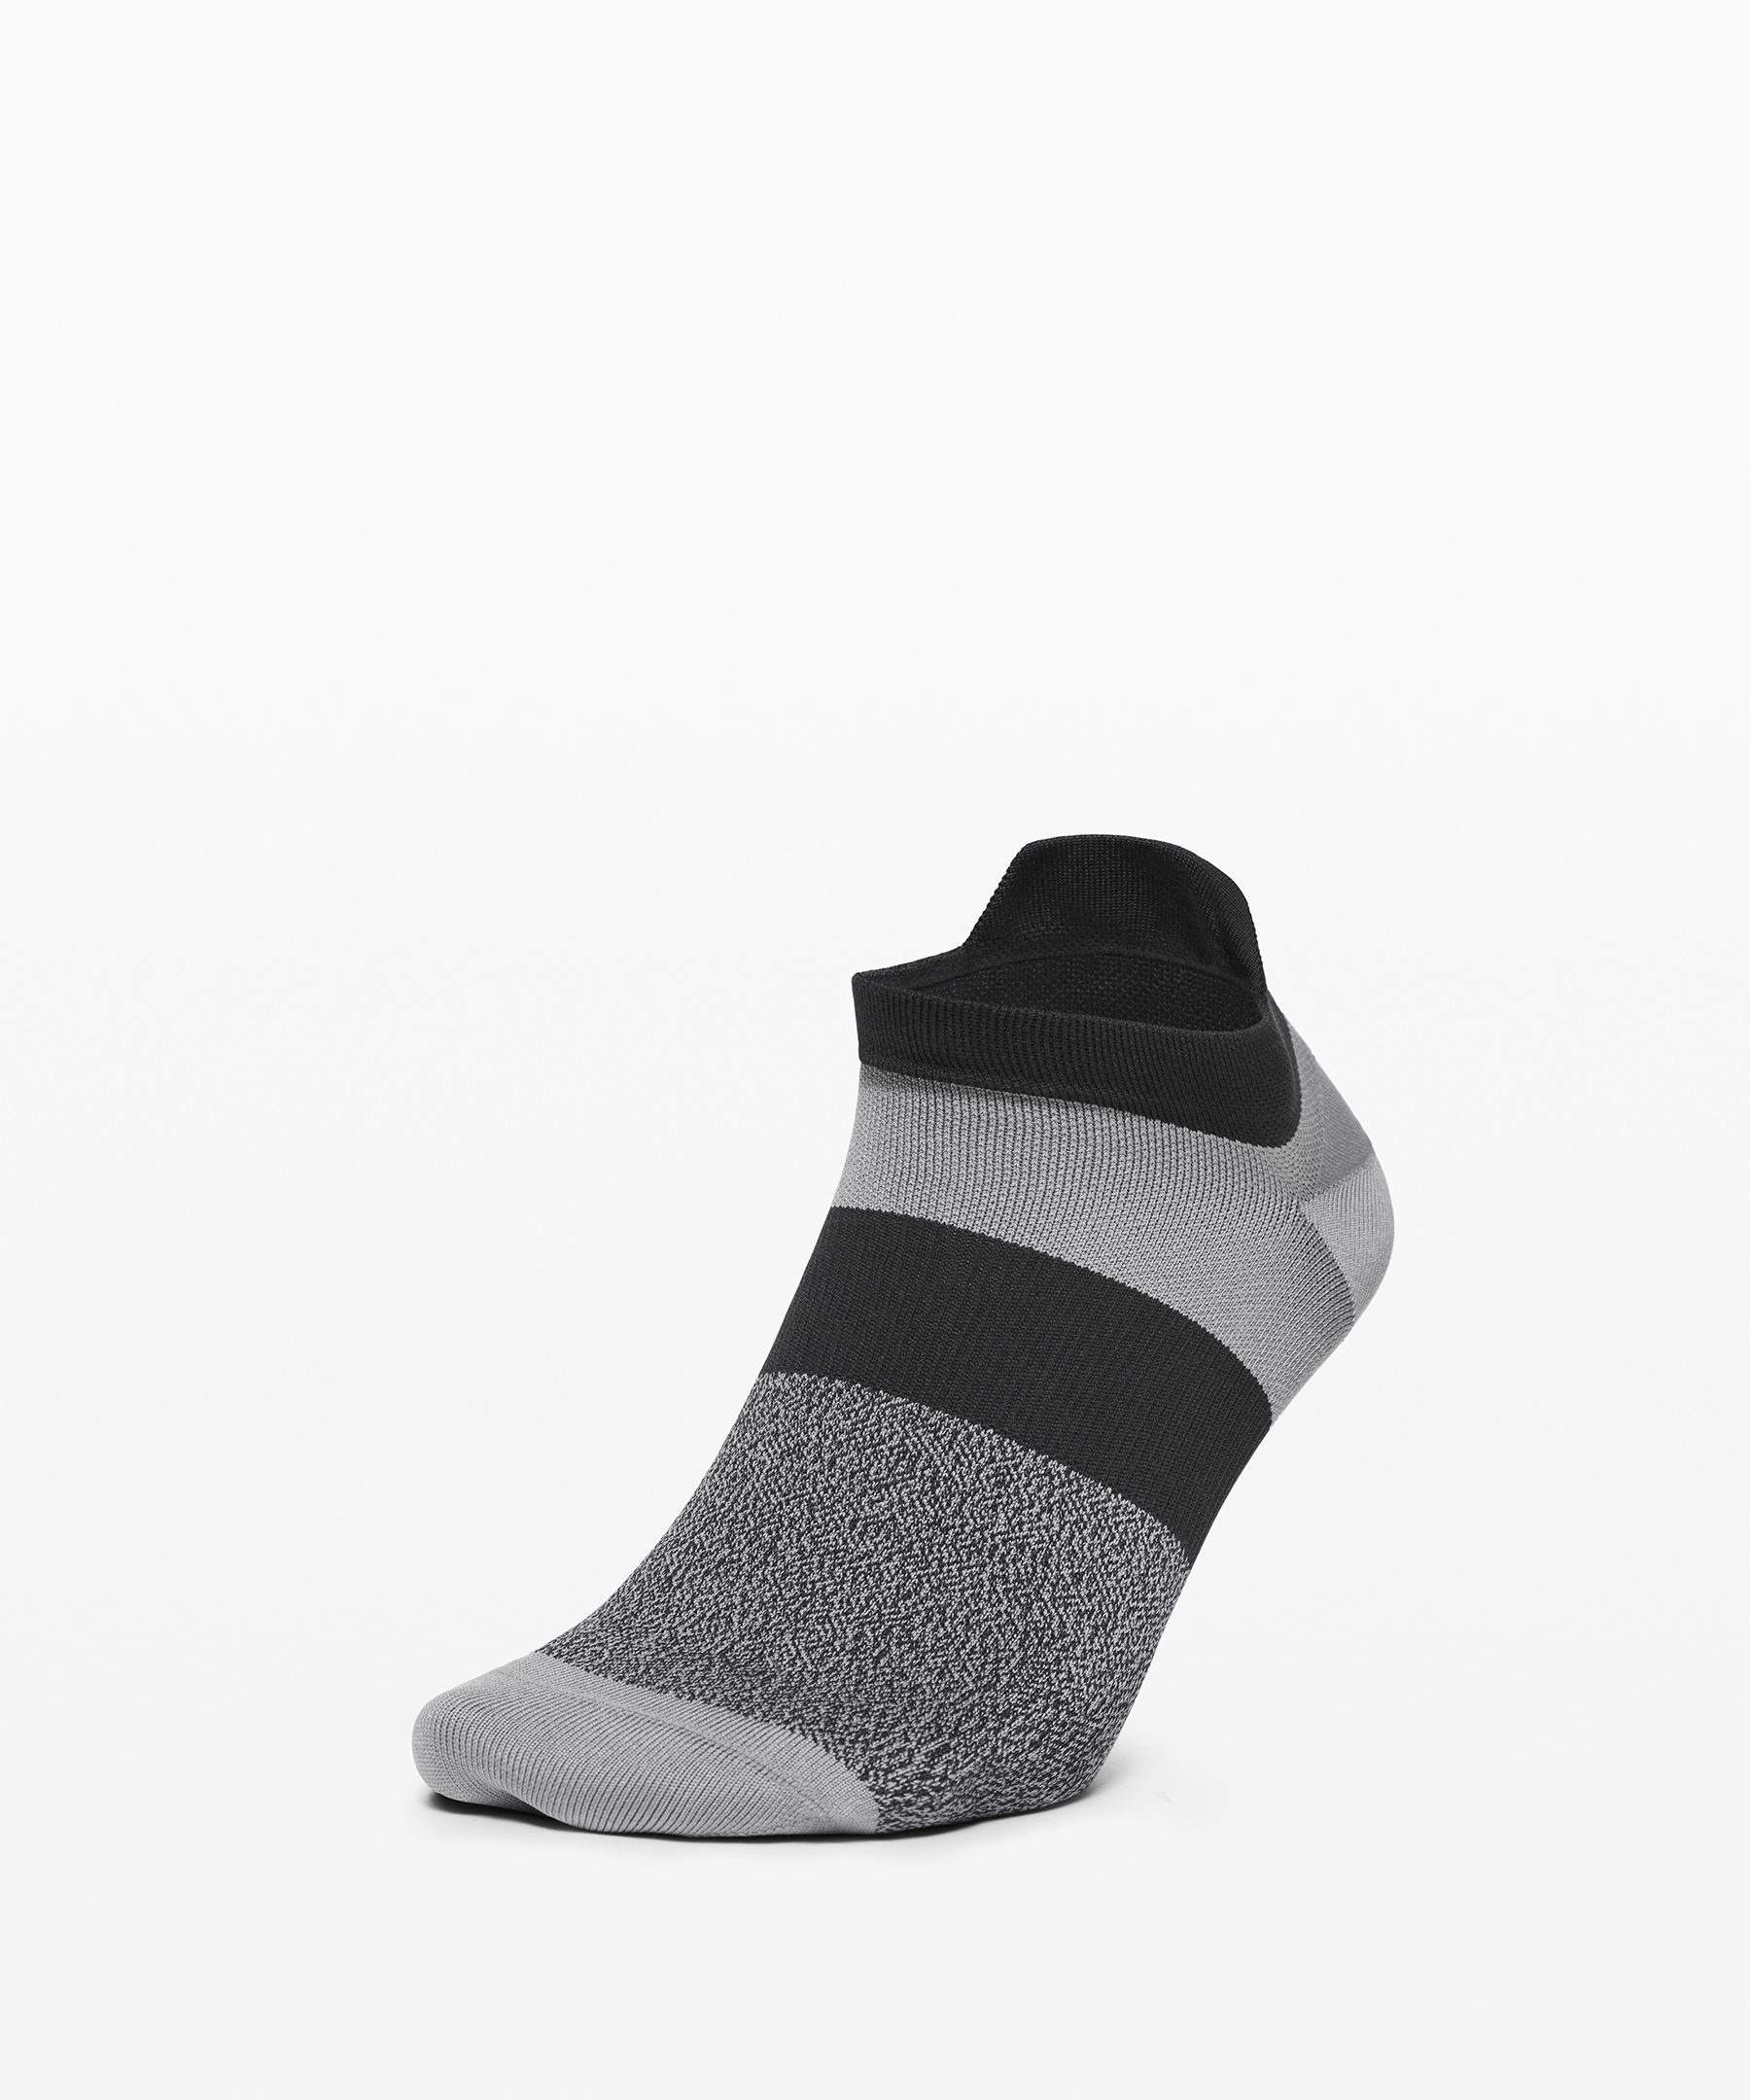 Ultra light, high-performance  socks designed to feel like  you\\\'re wearing next to nothing  on your longest runs.